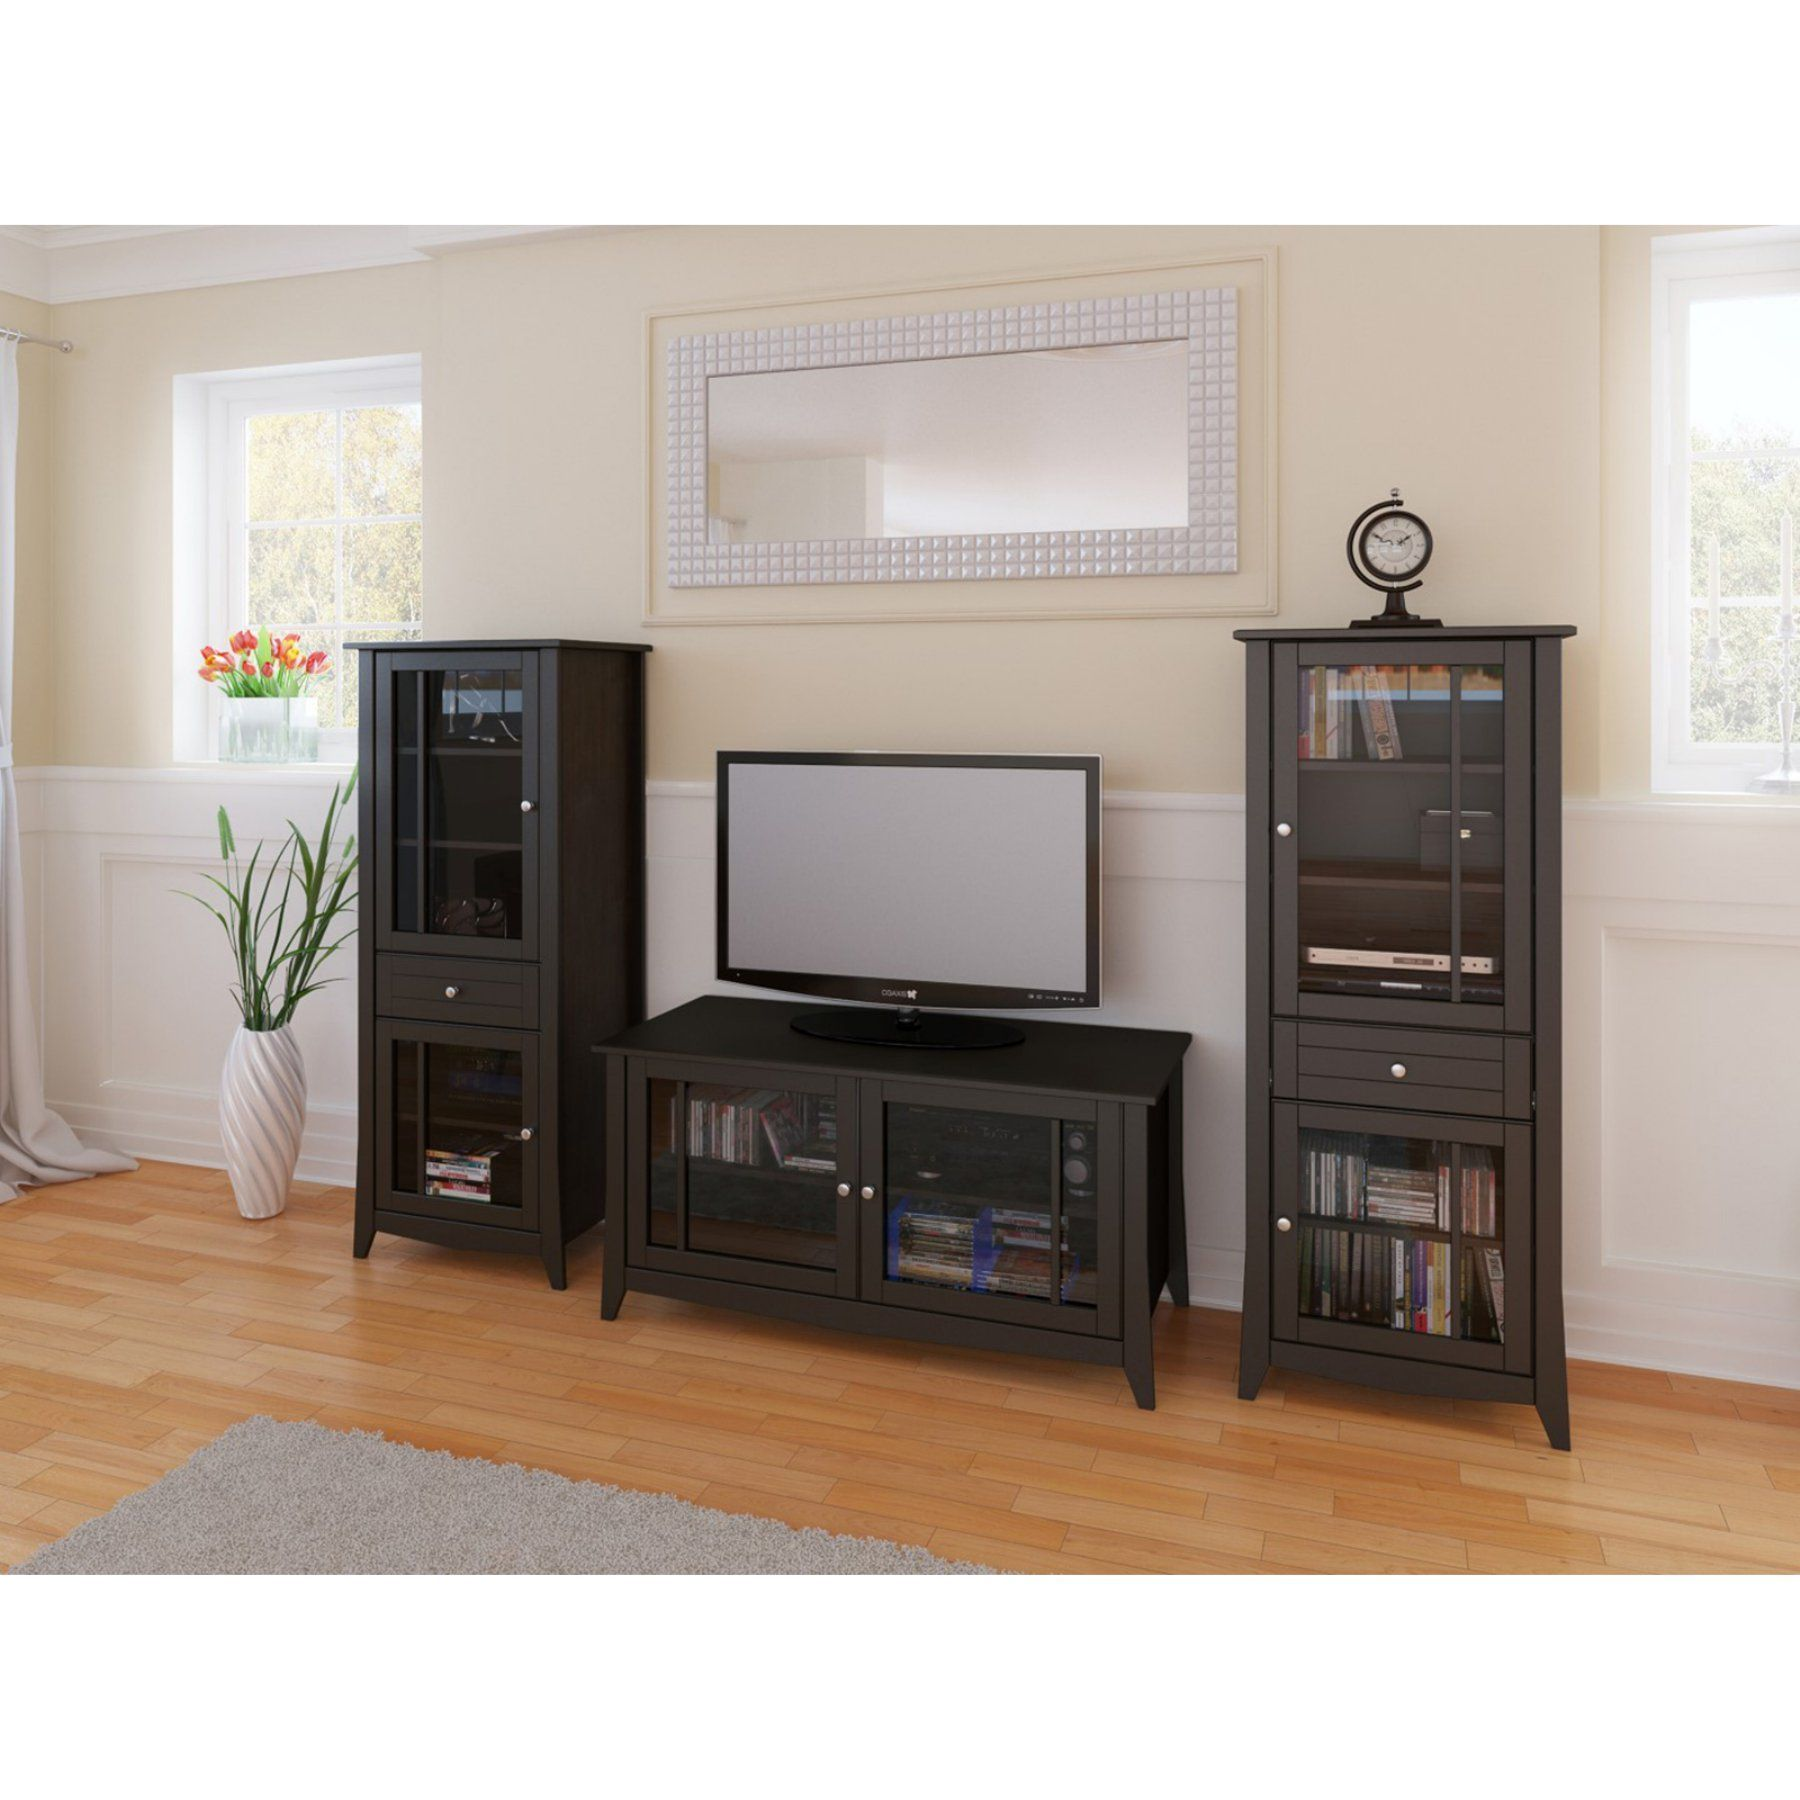 100% authentic 0be6b 84bcf Elegance 49 in. TV console with Curio Cabinet - MFI468 ...